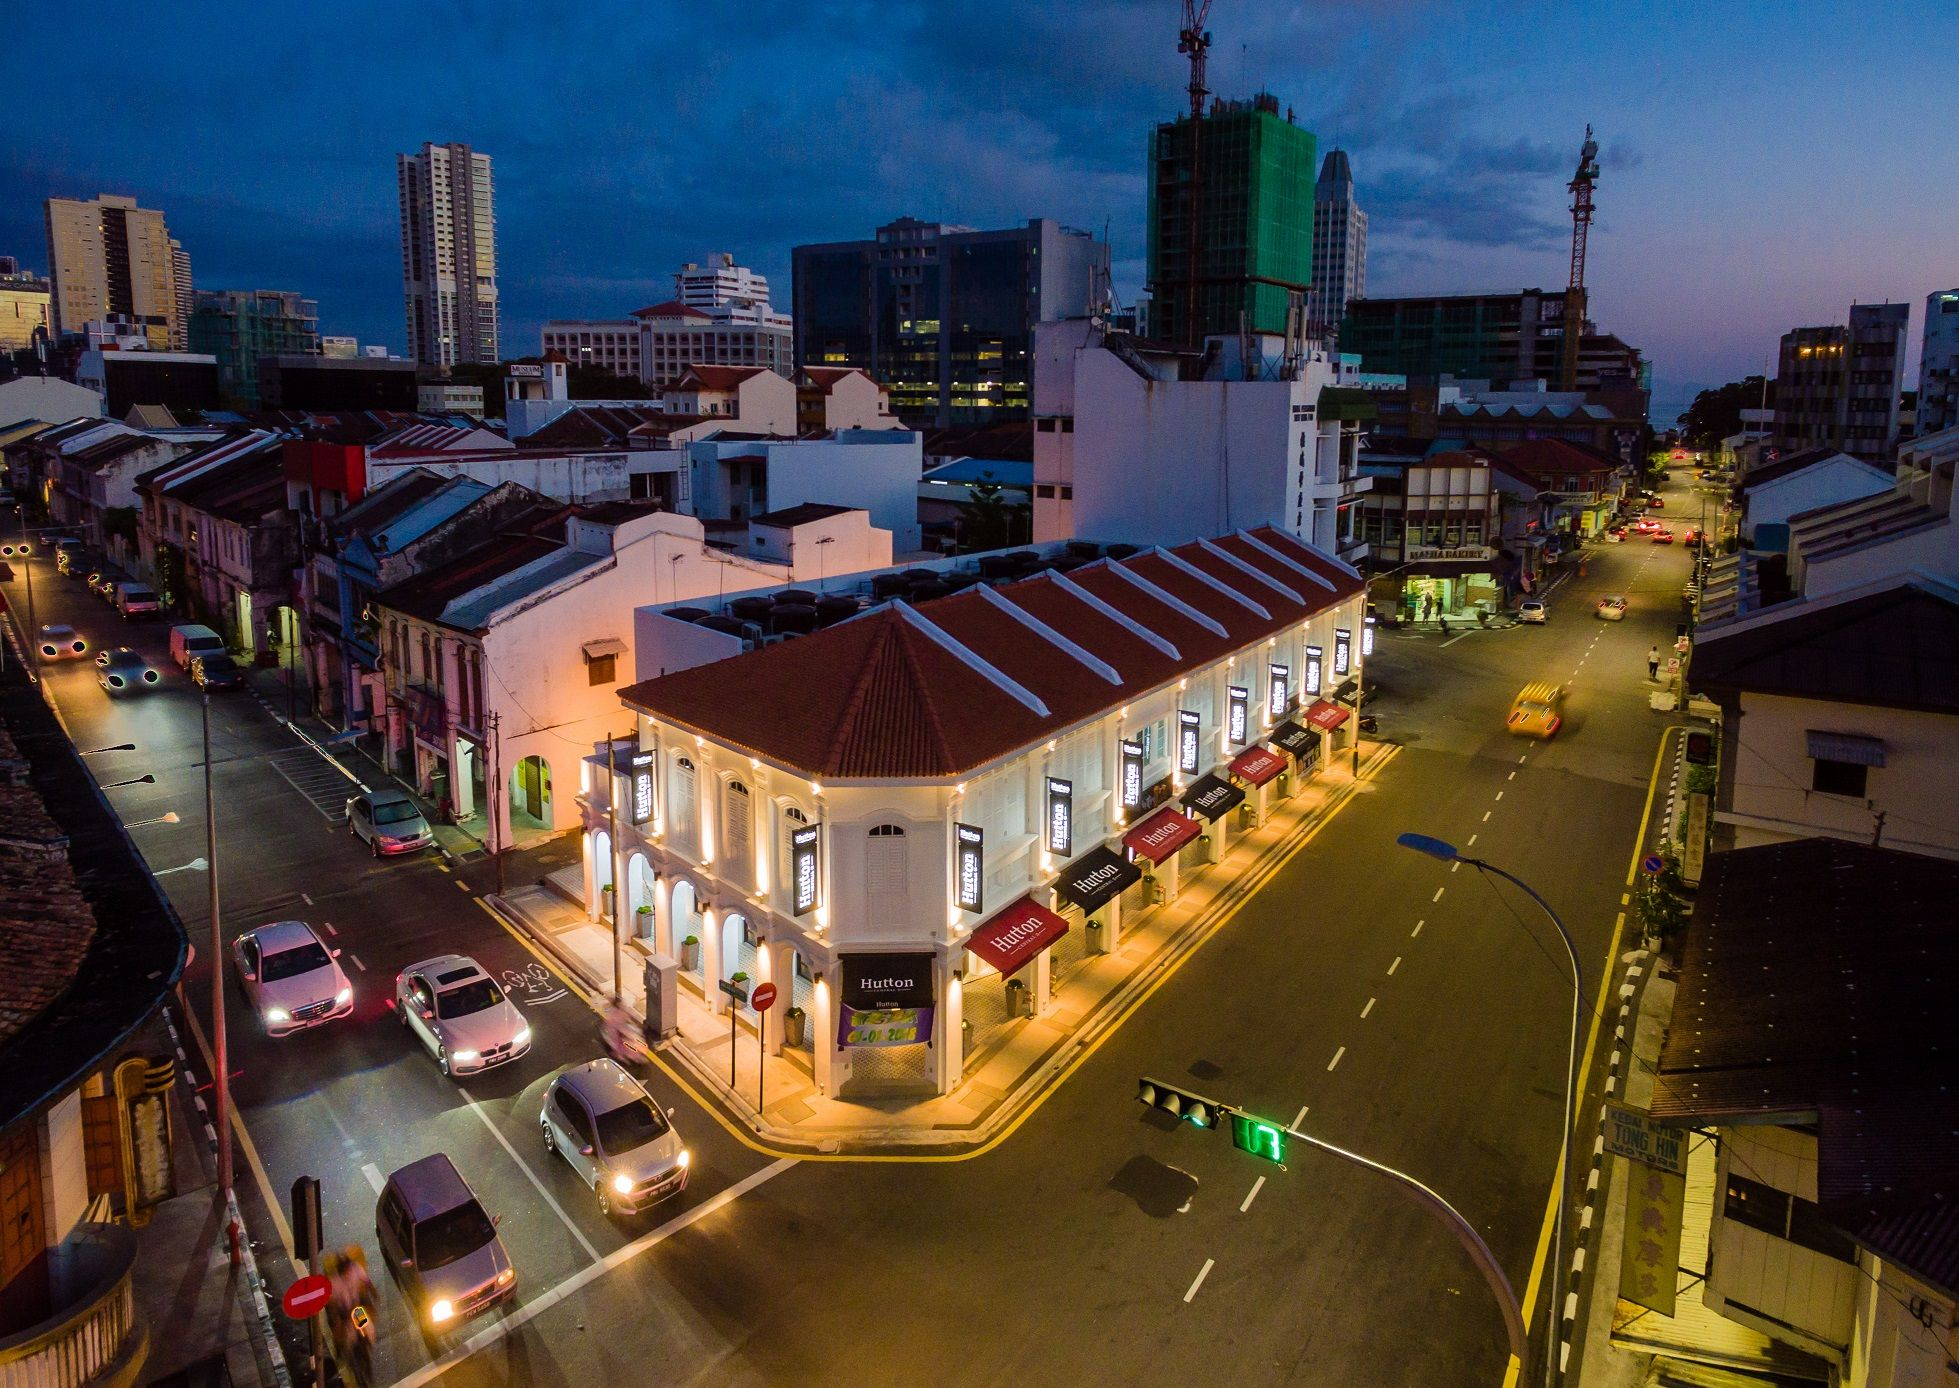 Hutton Central II Hotel By PHC, Pulau Penang